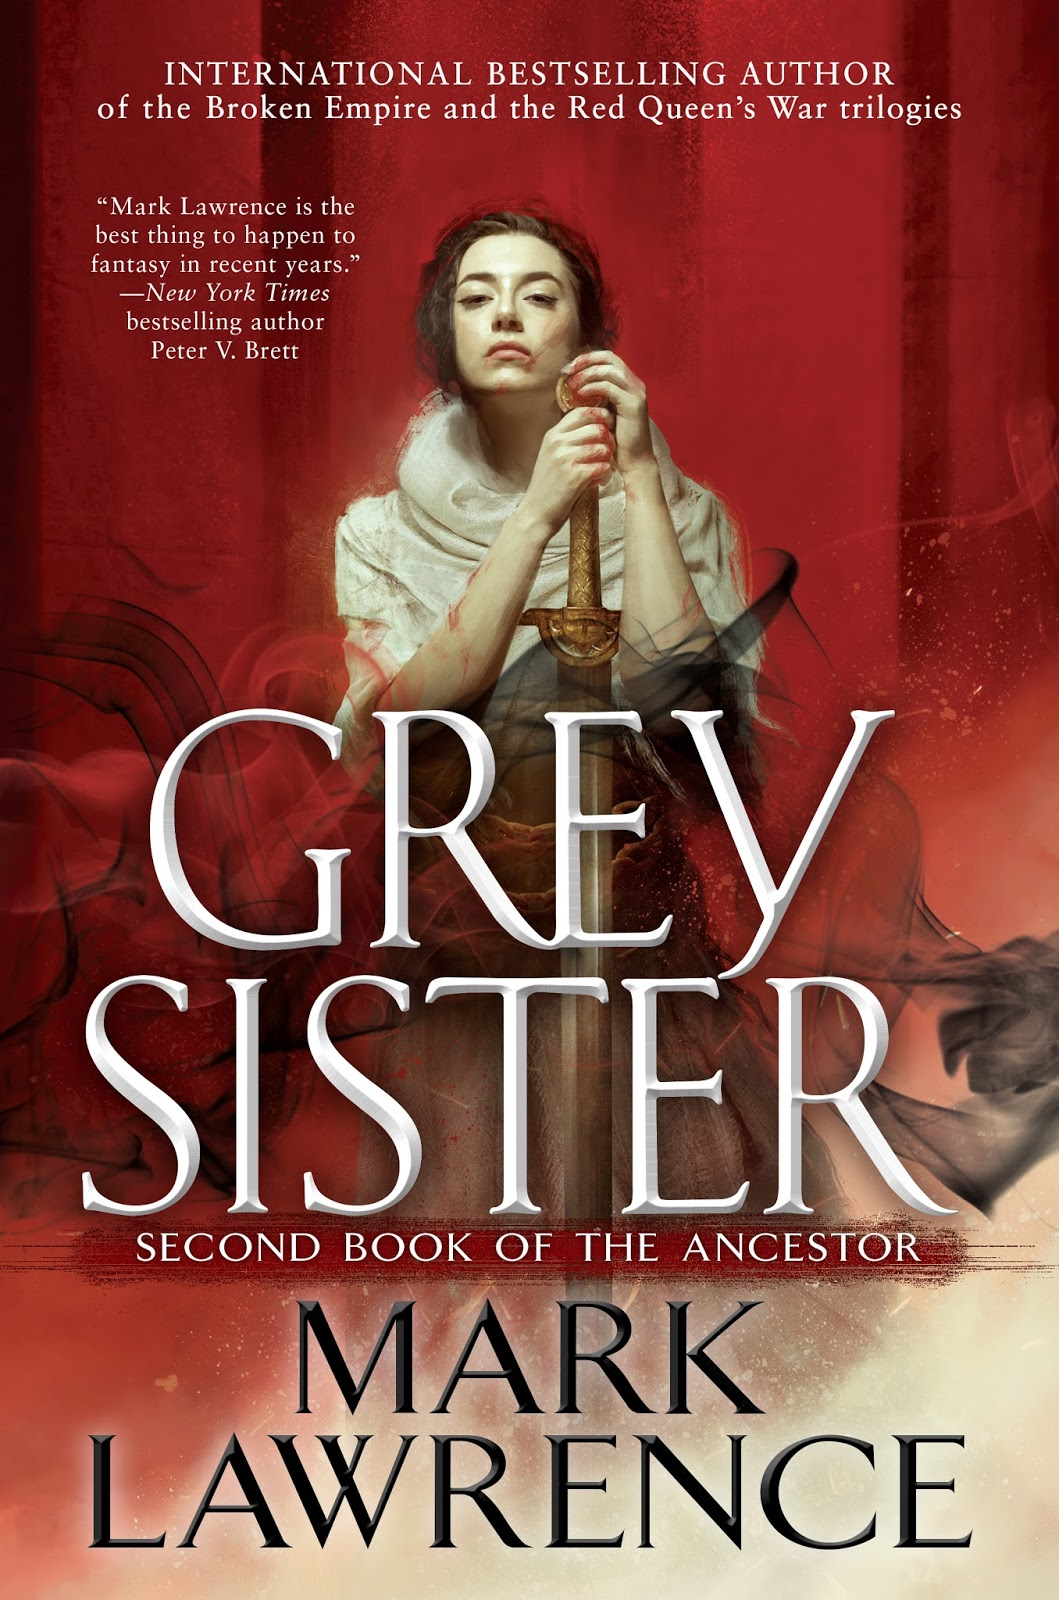 Grey Sister by Mark Lawrence